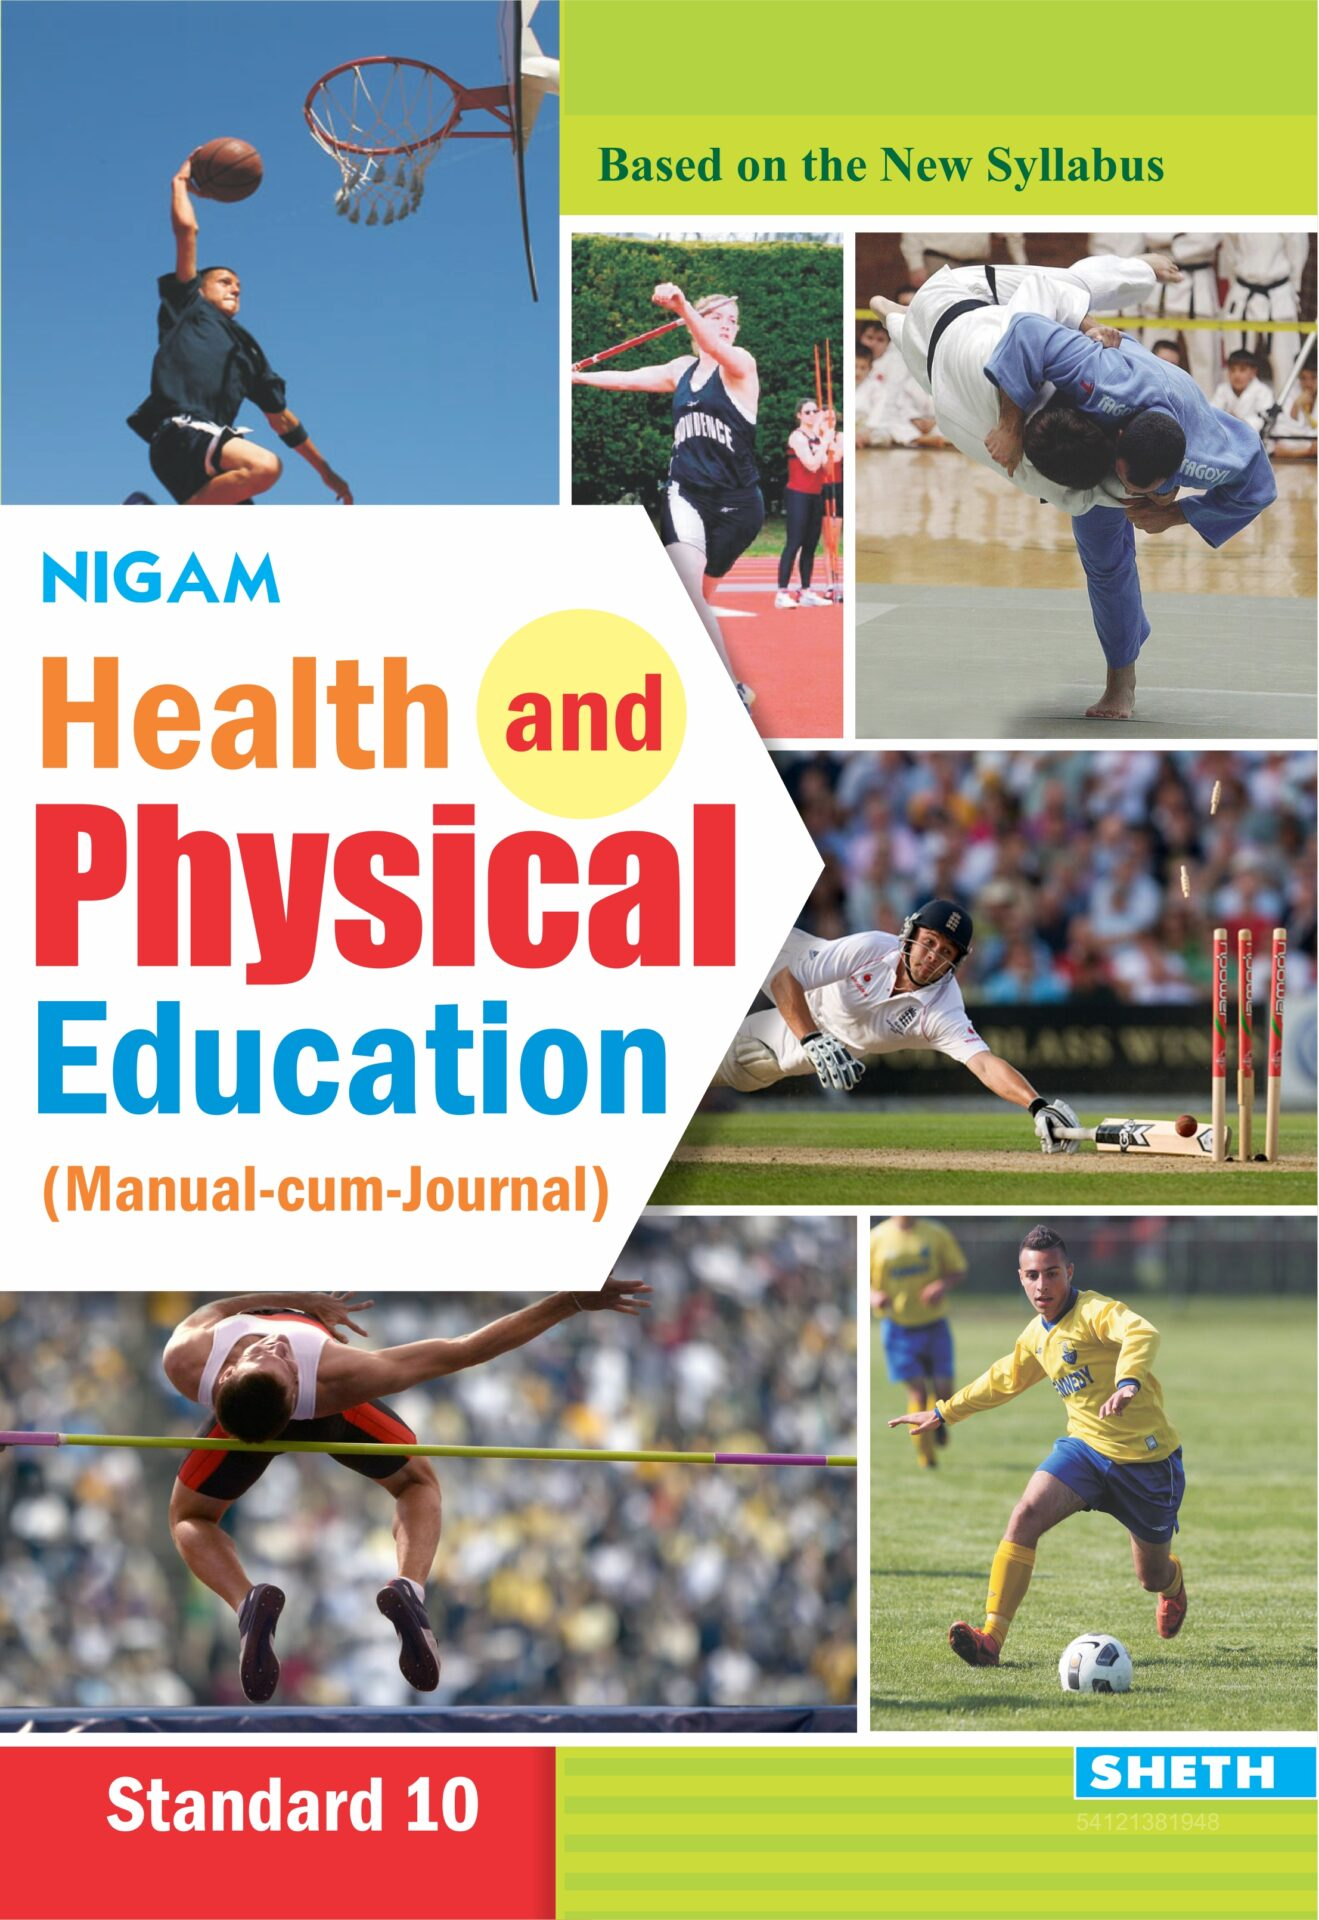 Nigam Health and Physical Education Standard 10 1